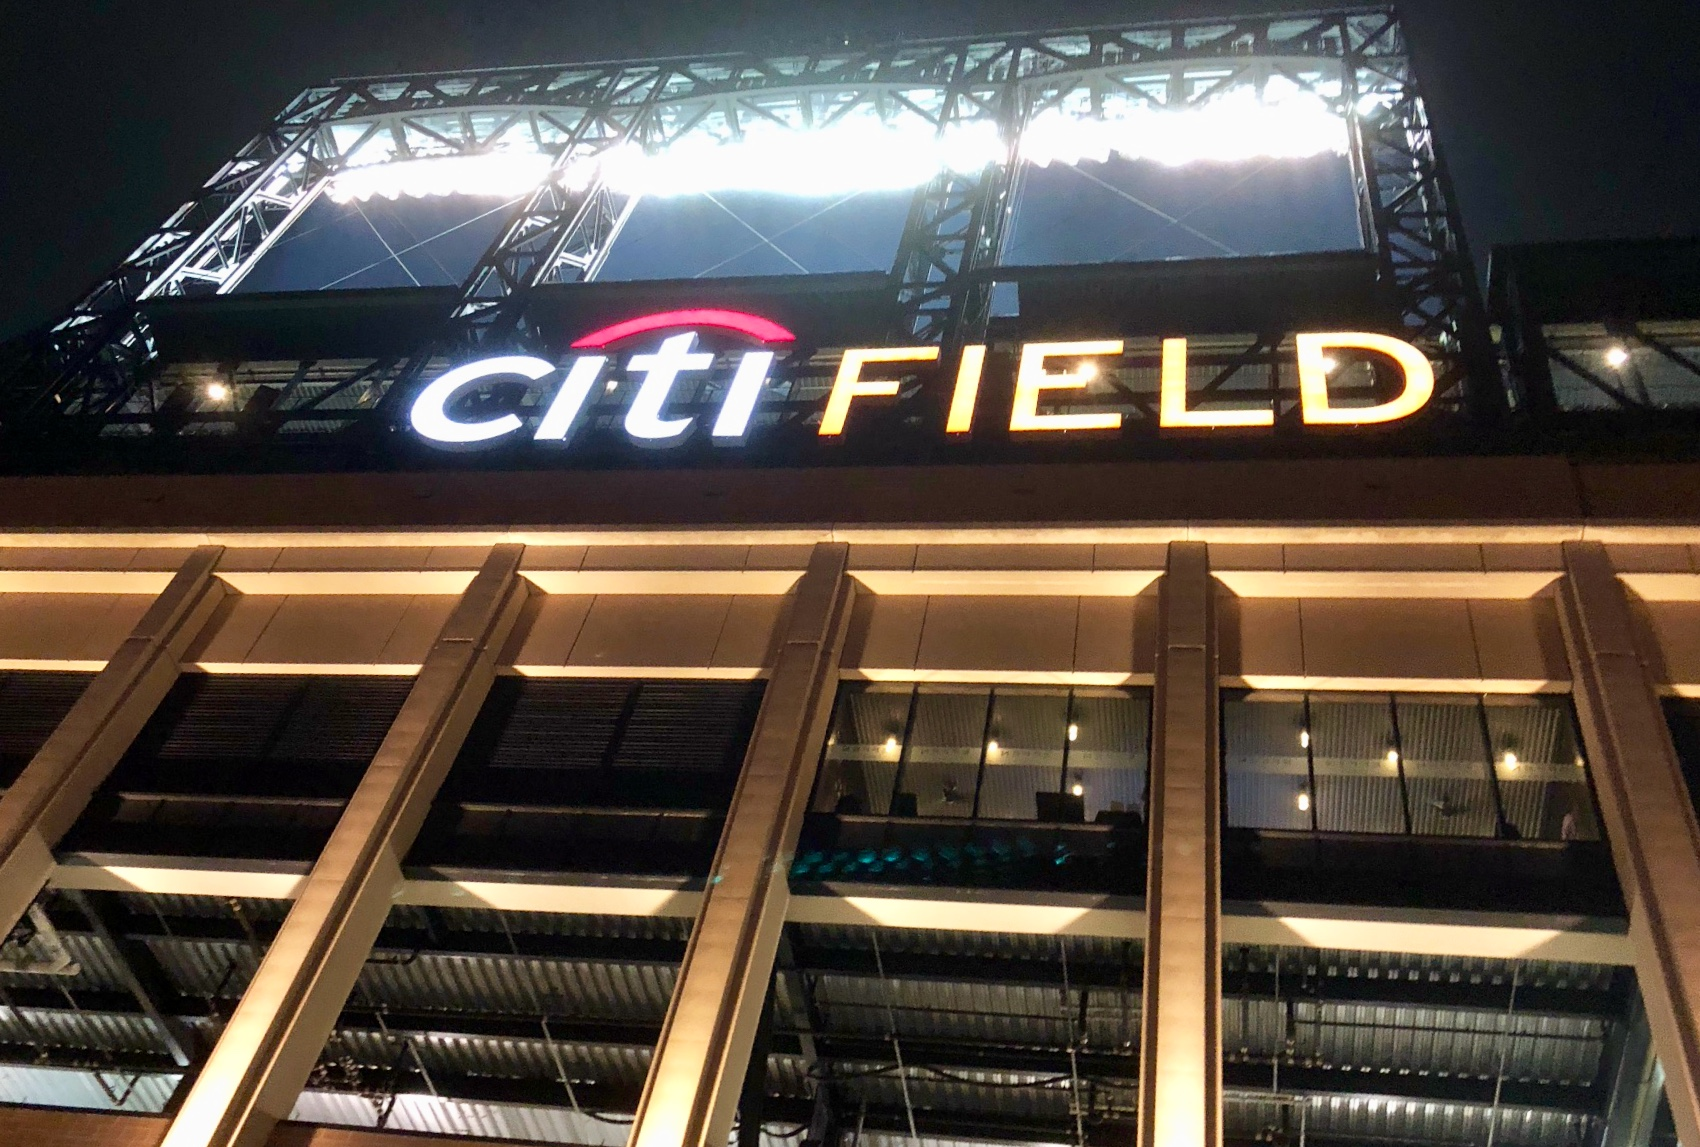 A pleasant walk back to the bus past Citi Field's cool stuff